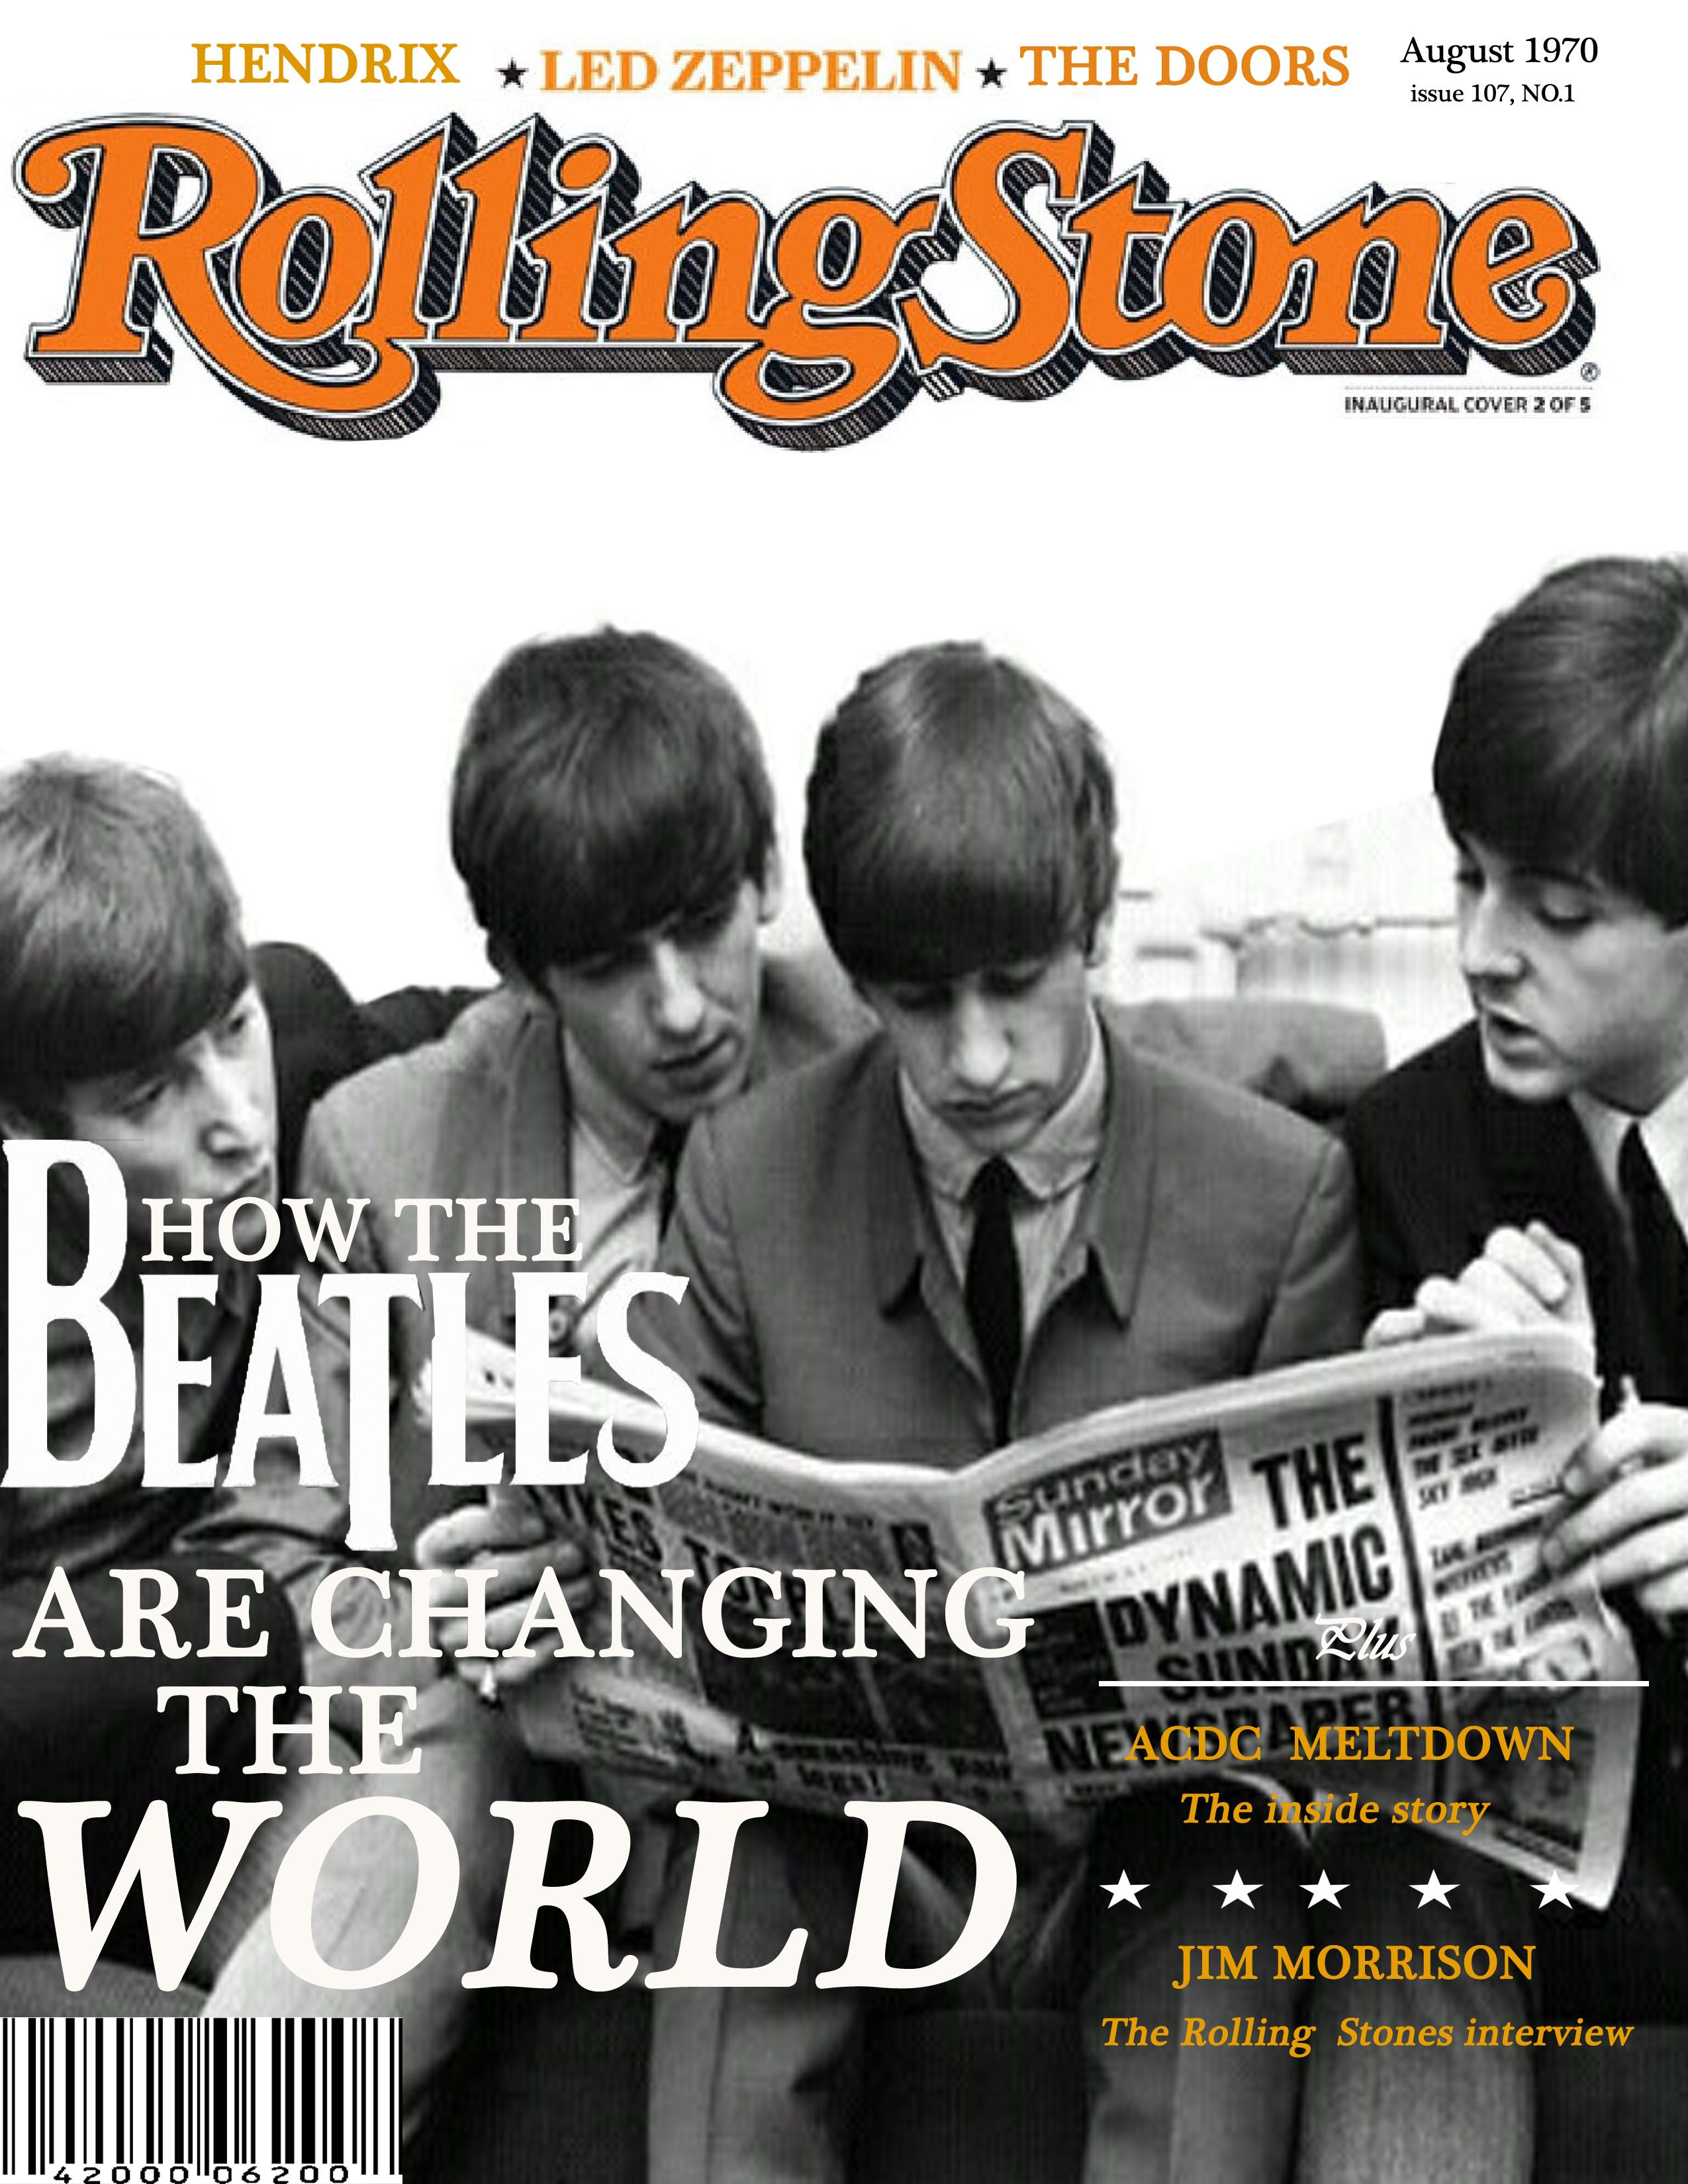 rolling stones magazine covers archive images galleries with a bite. Black Bedroom Furniture Sets. Home Design Ideas